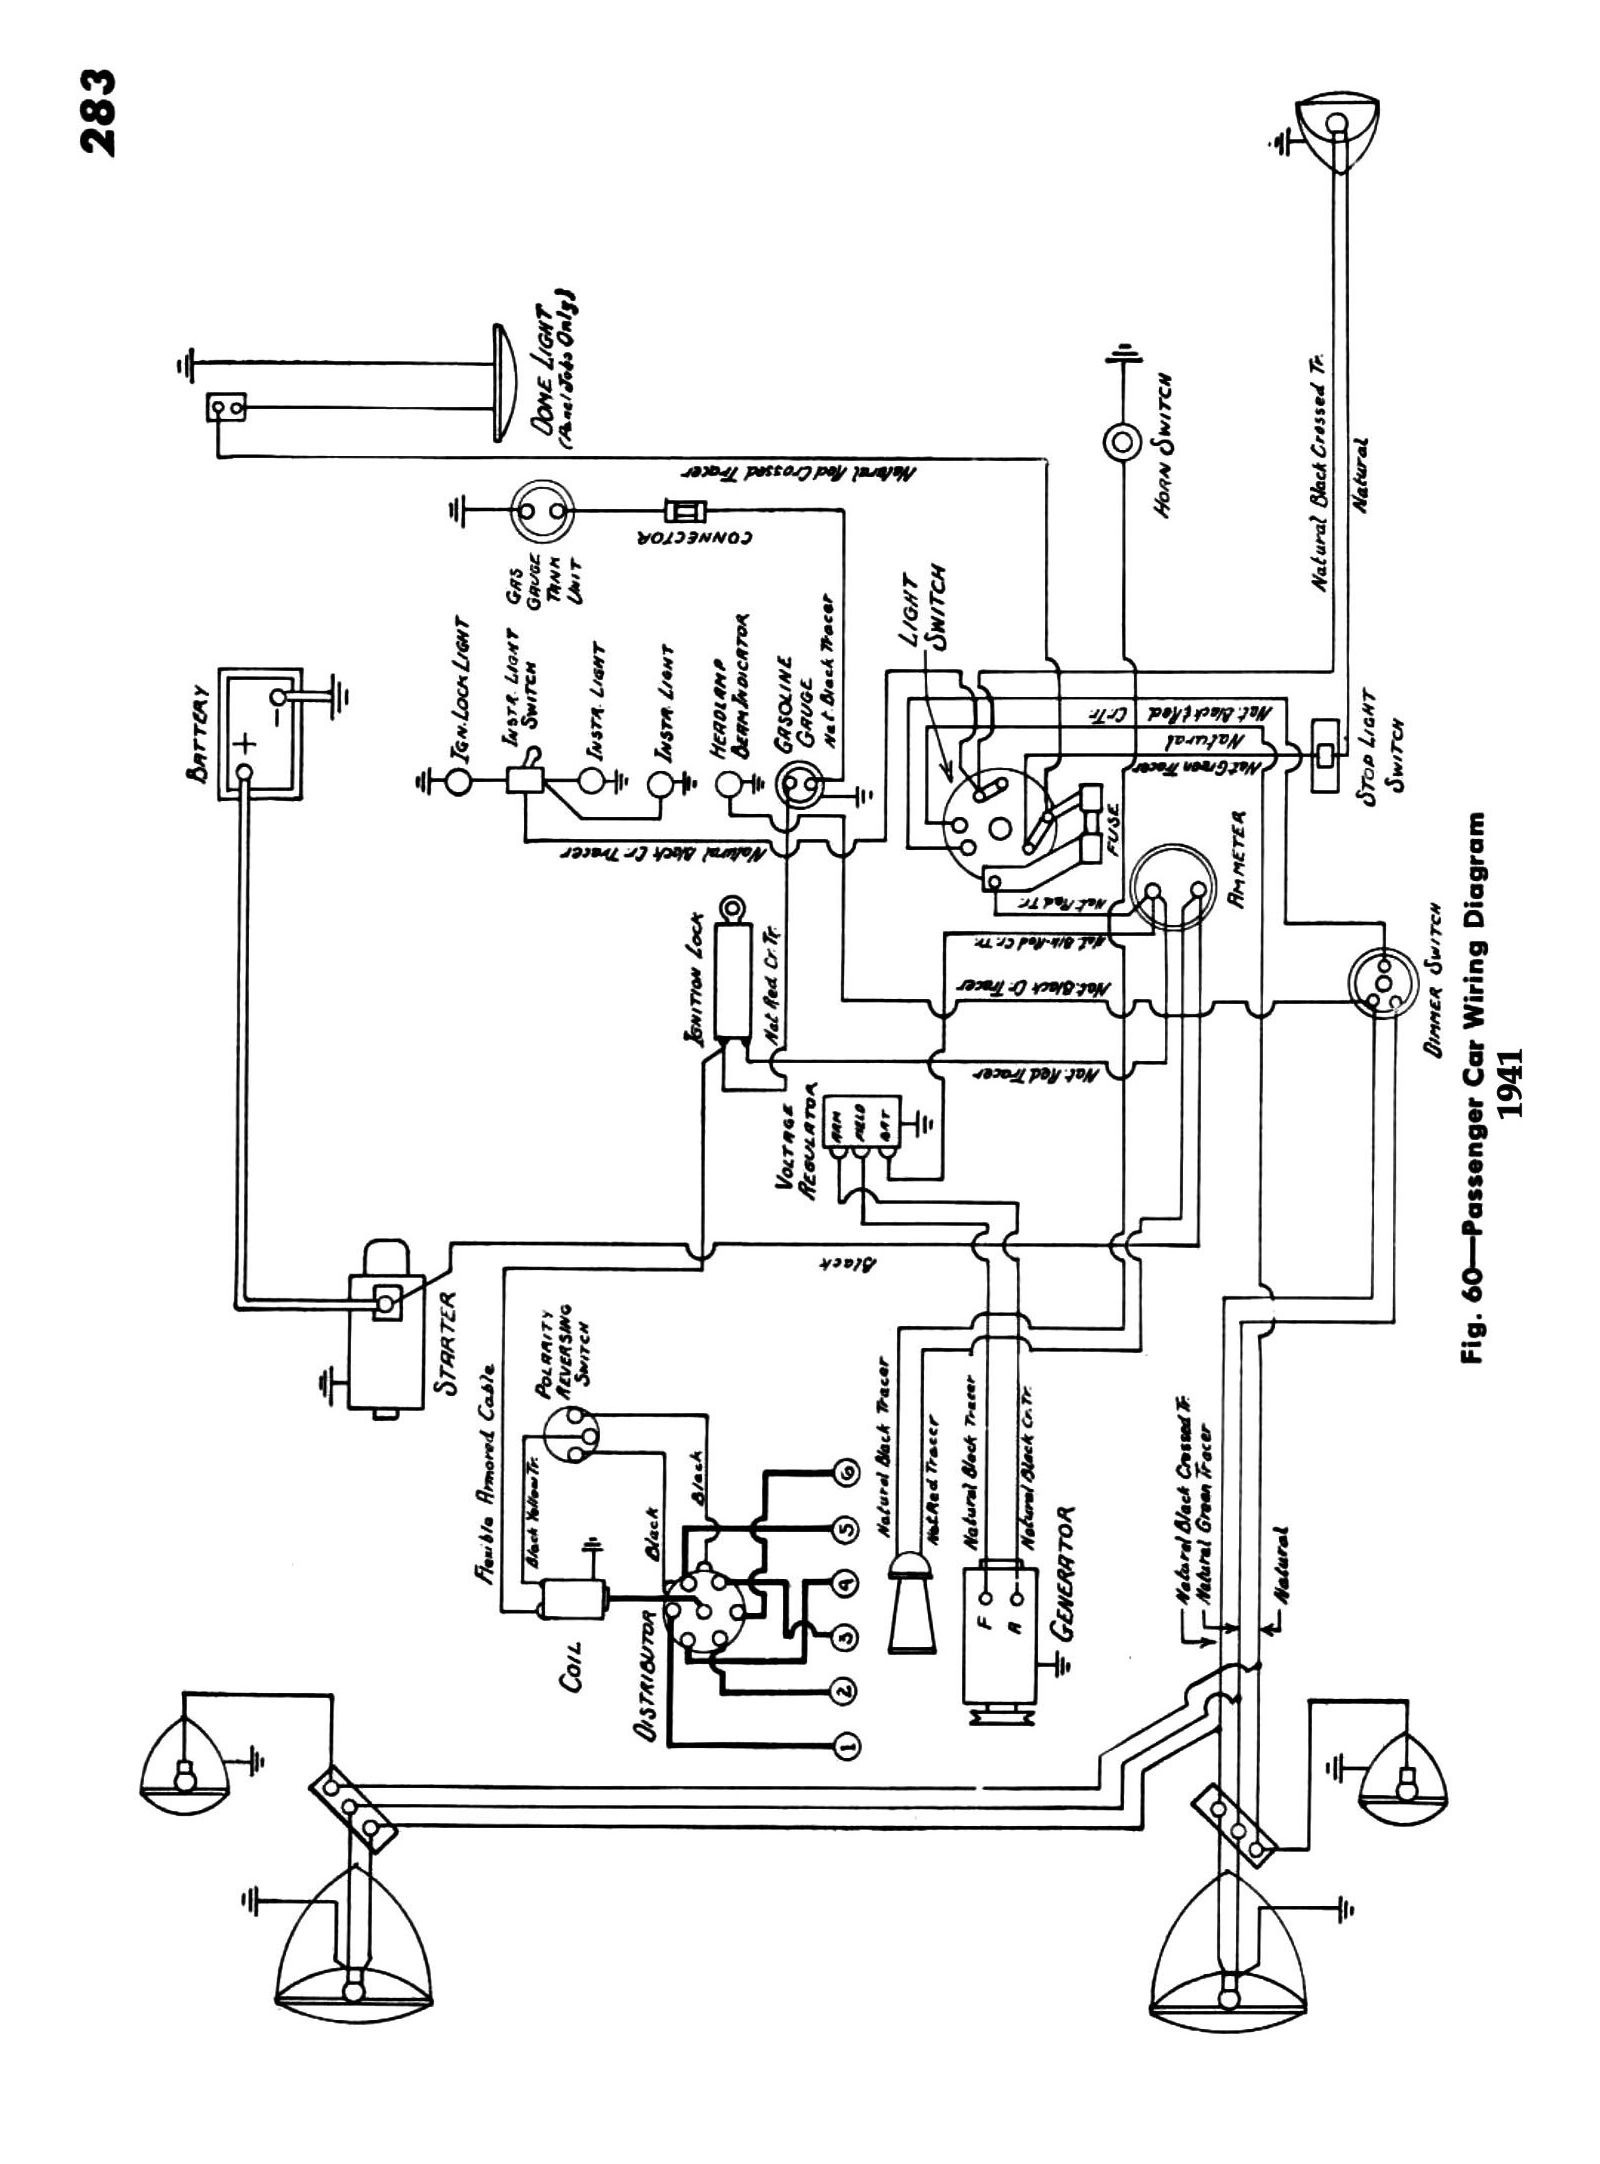 41csm283 chevy wiring diagrams international truck wiring diagram at gsmx.co